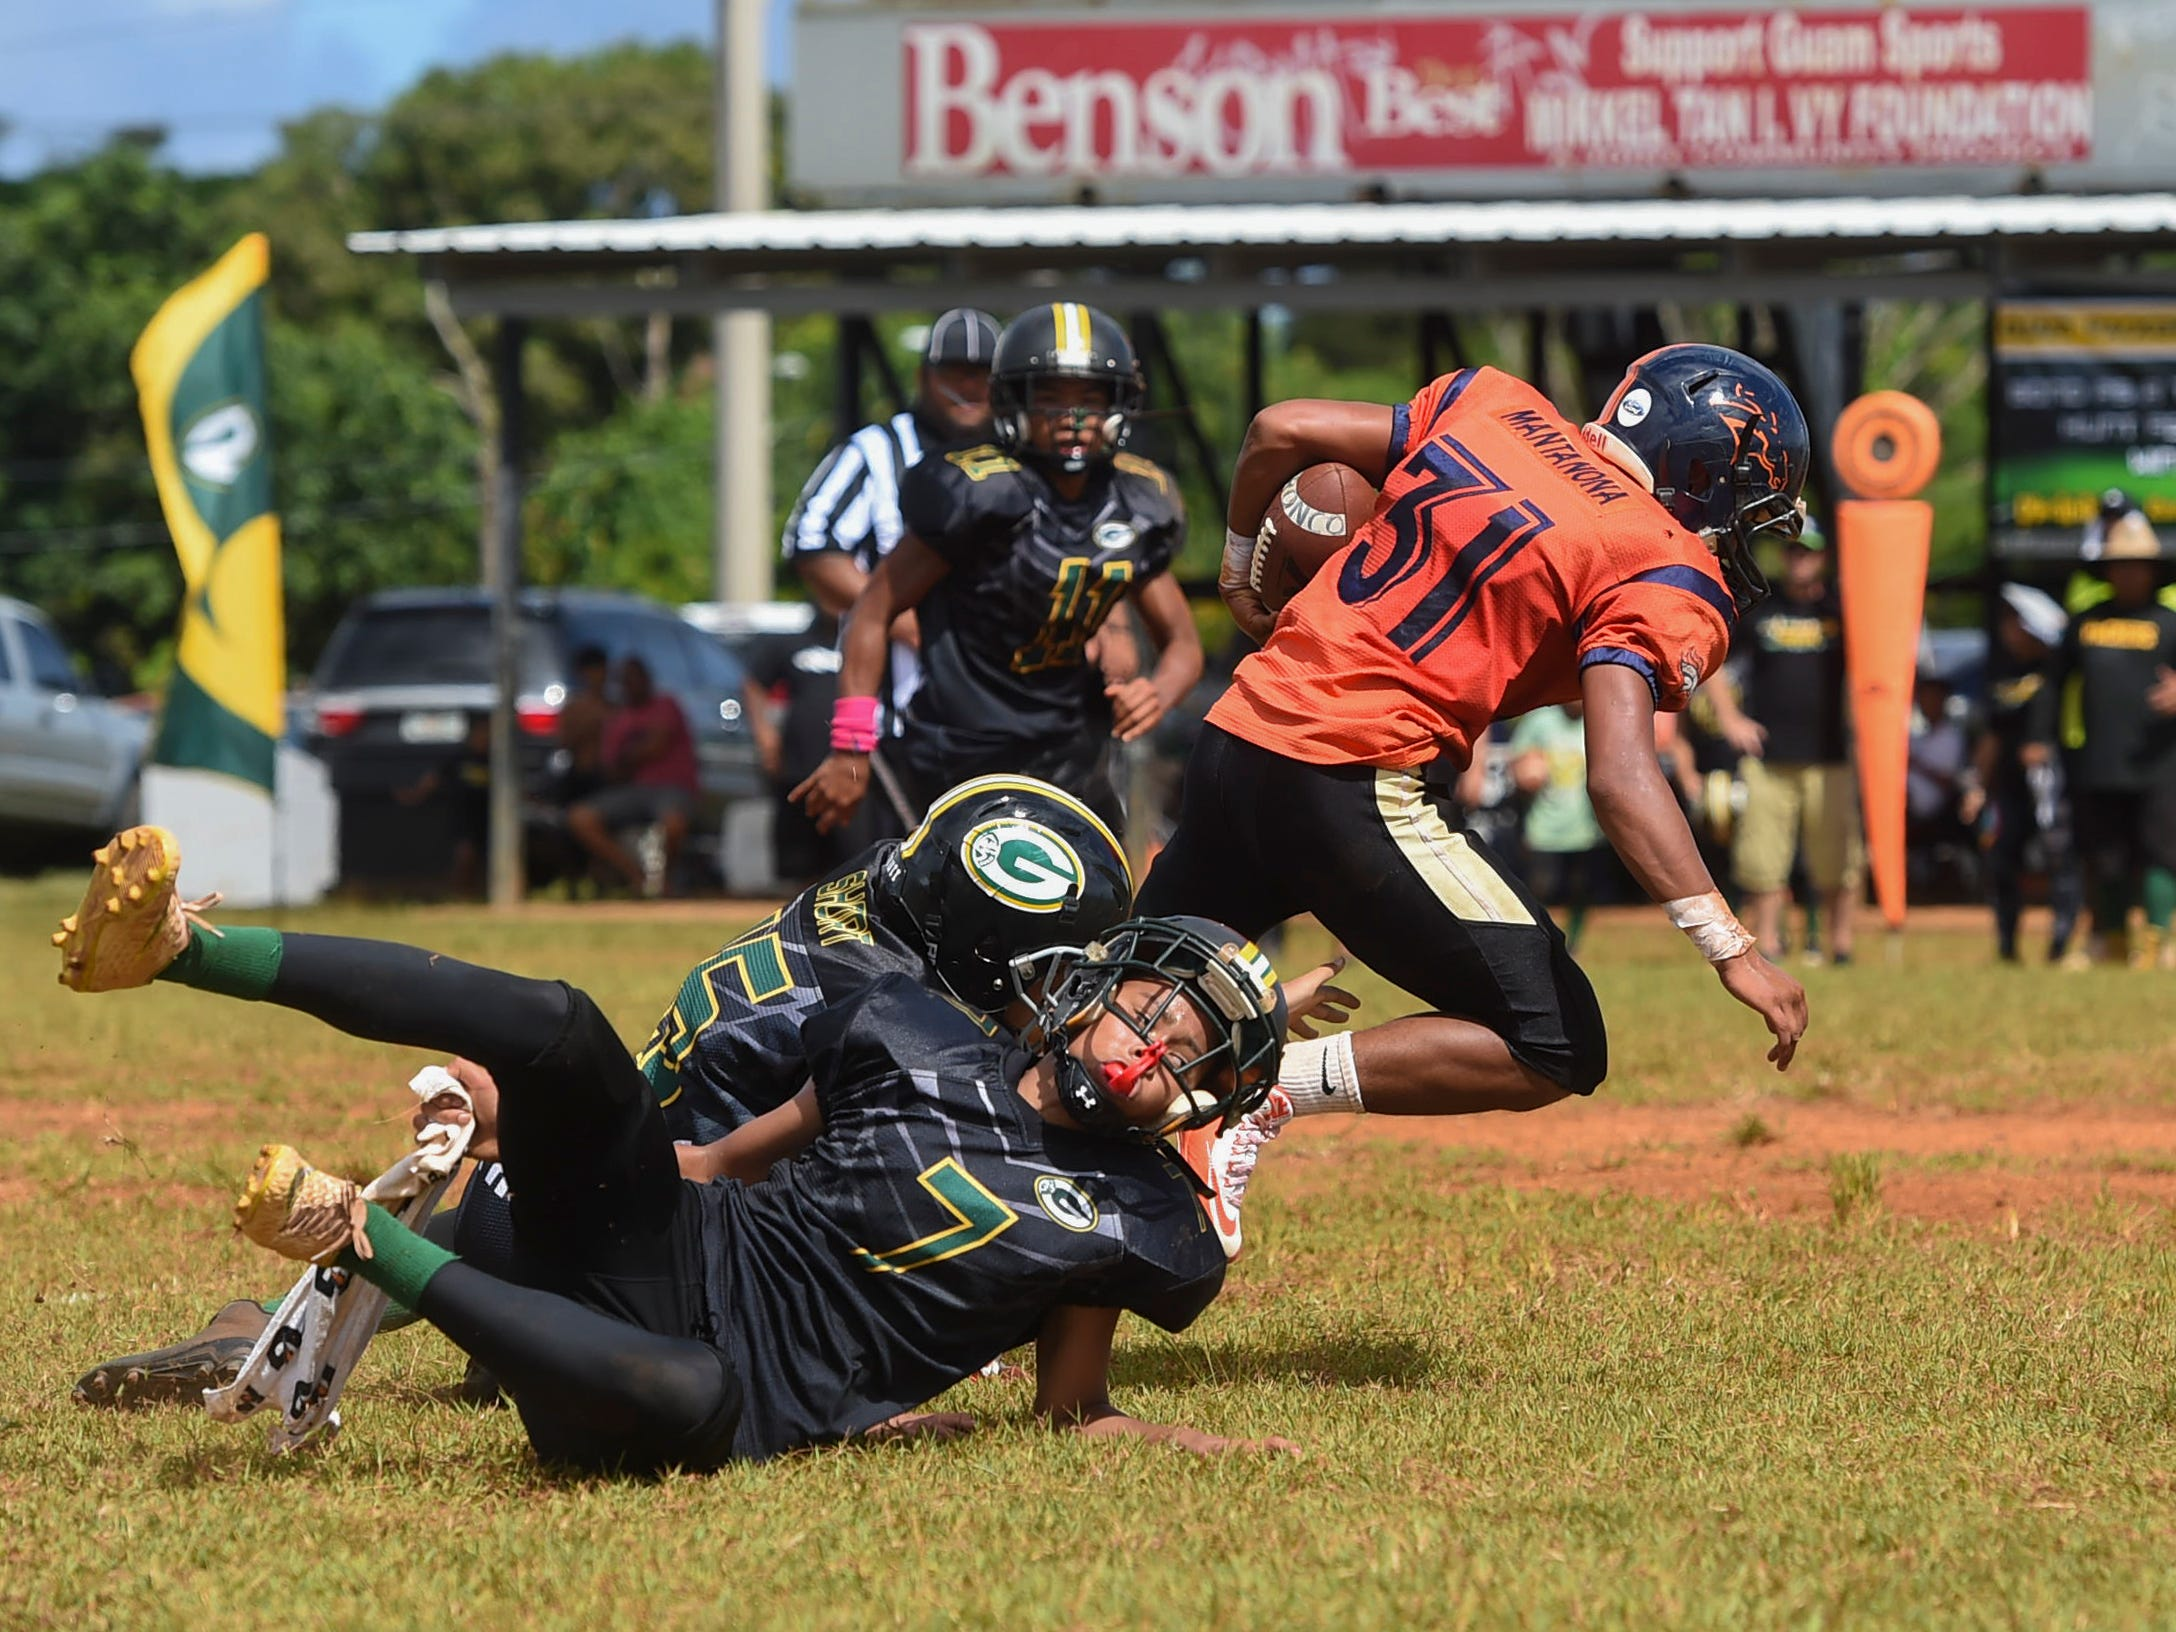 Cinnabon Island Broncos player Francisco Mantanona (31) breaks free from Guam Packers defensive players during their Guam National Youth Football Federation Matua division game at the Mikkel Tan I. Vy Field in Tiyan on Sept. 2, 2018.